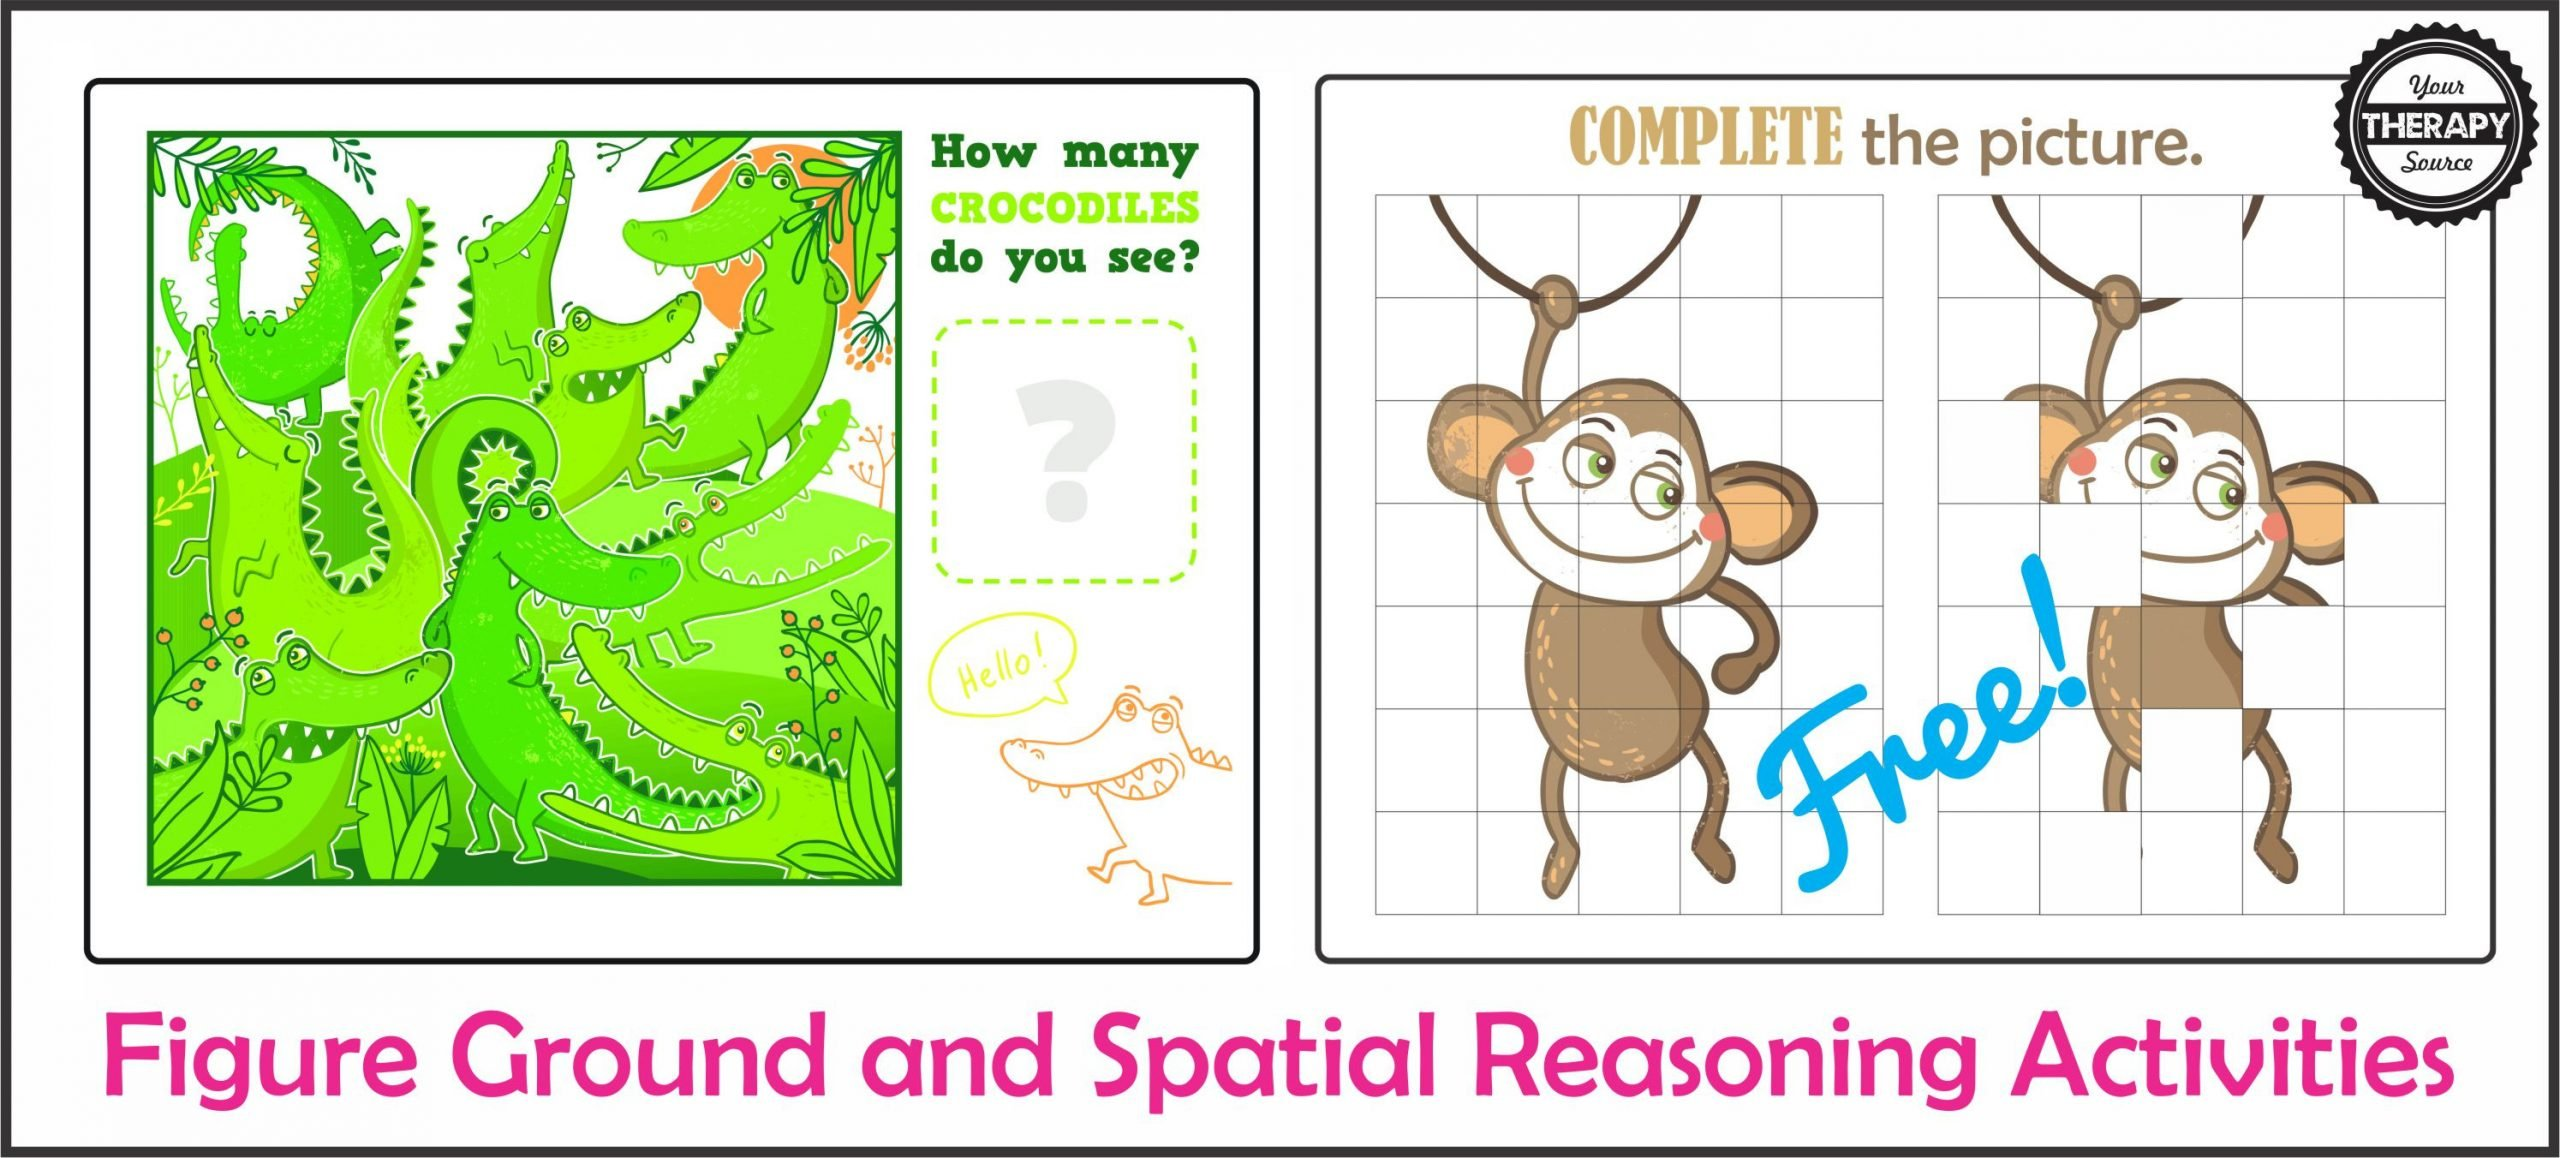 Spatial Reasoning Worksheets Figure Ground and Spatial Reasoning Activities Your